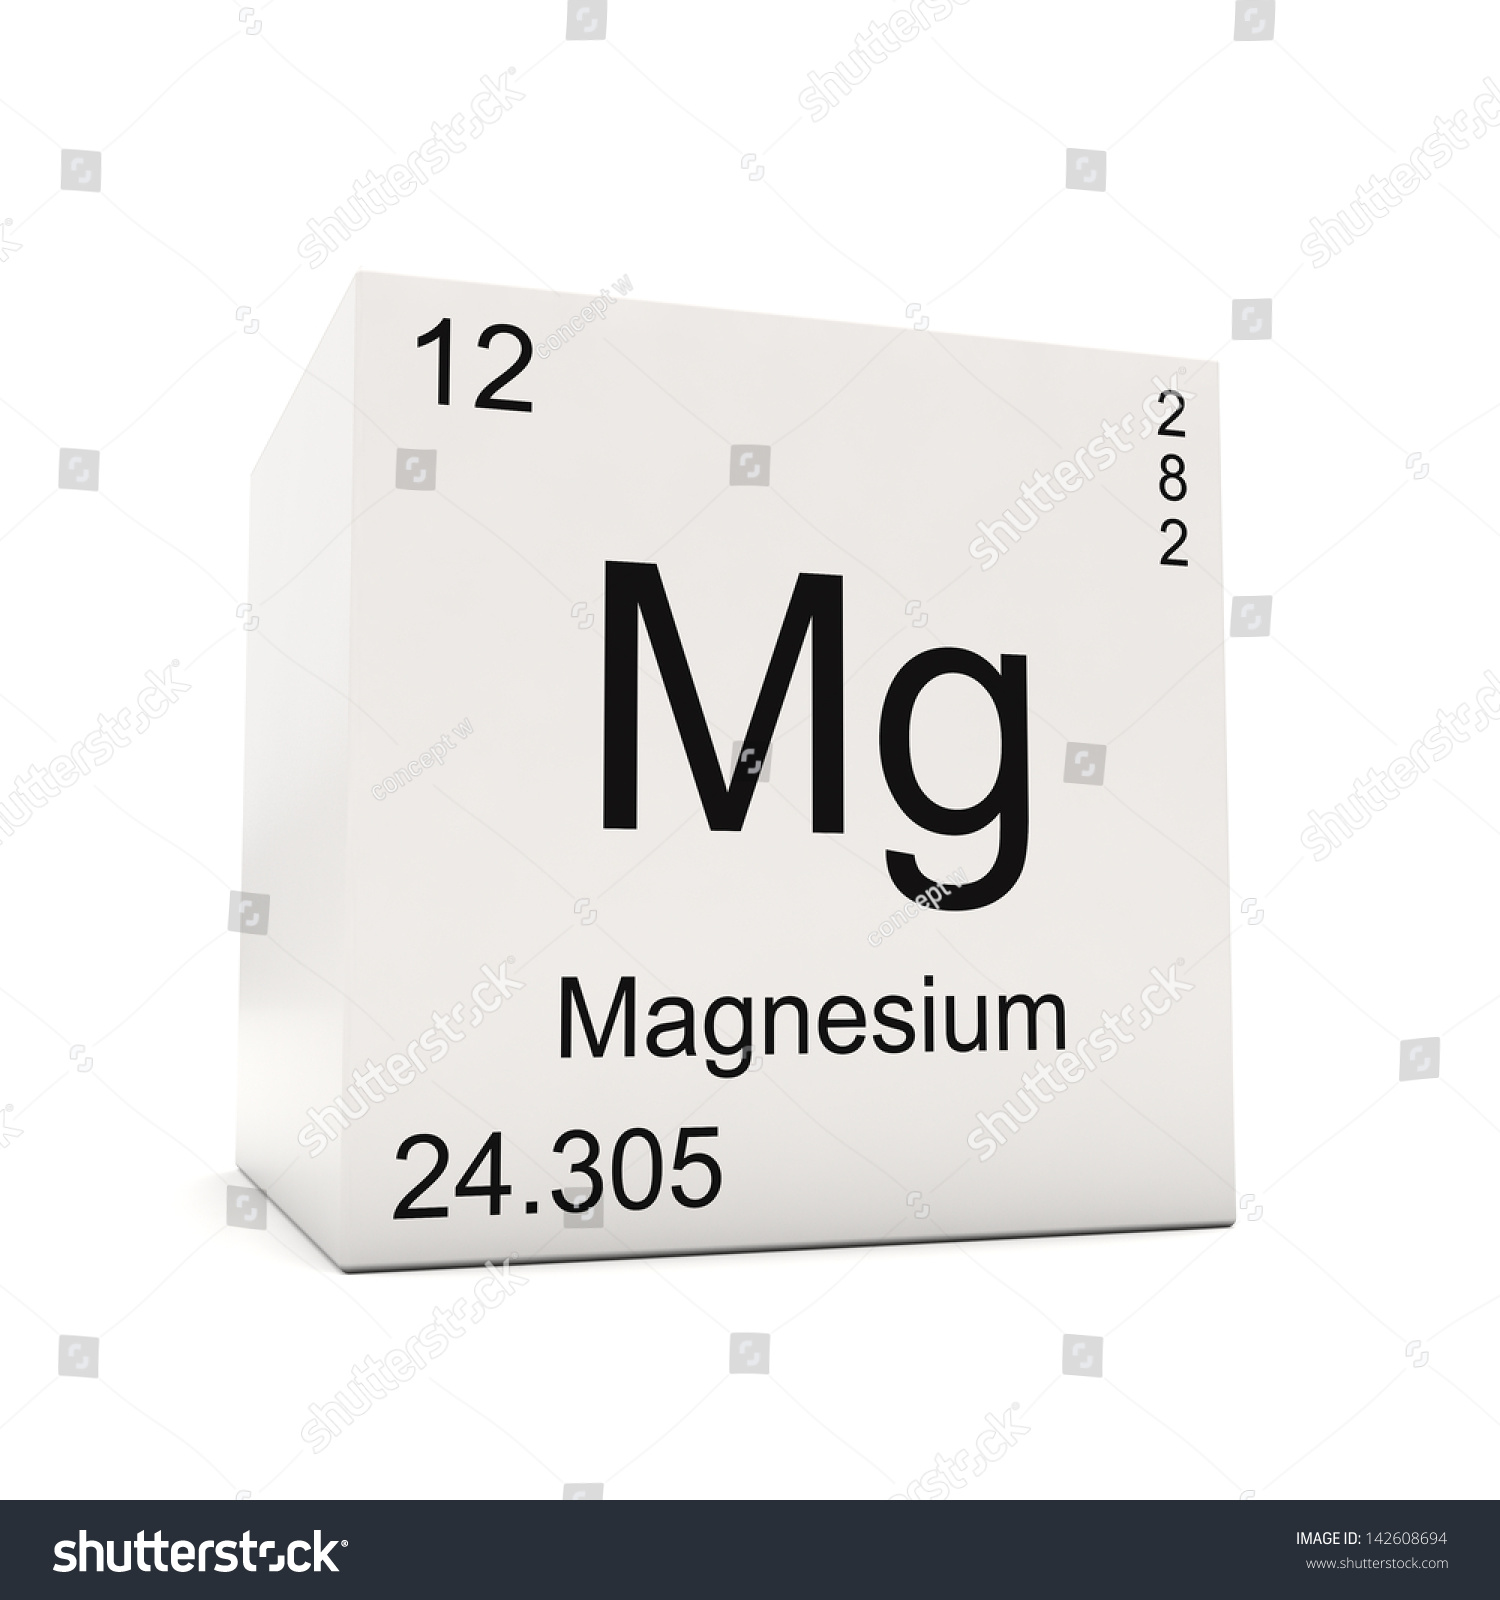 Cube magnesium element periodic table isolated stock illustration cube of magnesium element of the periodic table isolated on white background gamestrikefo Gallery